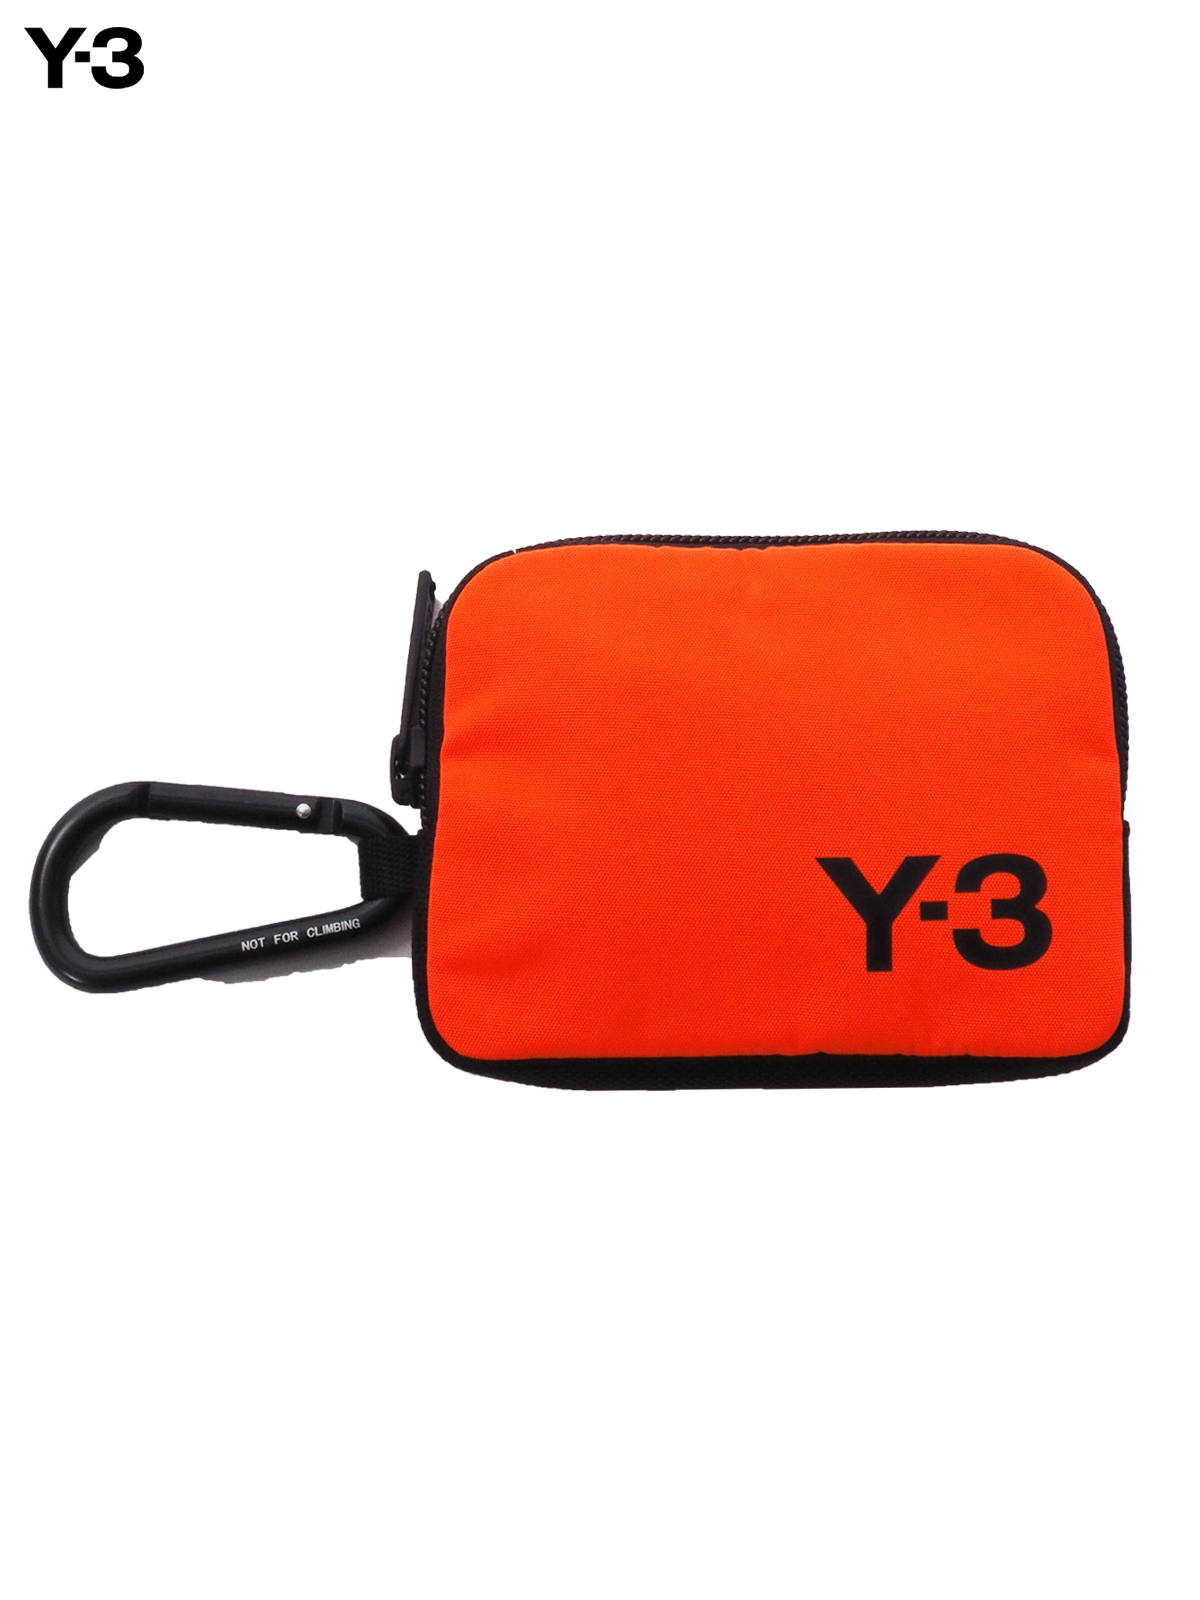 Y-3 CARABINER POUCH / ワイスリー カラビナ ポーチ(オレンジ)